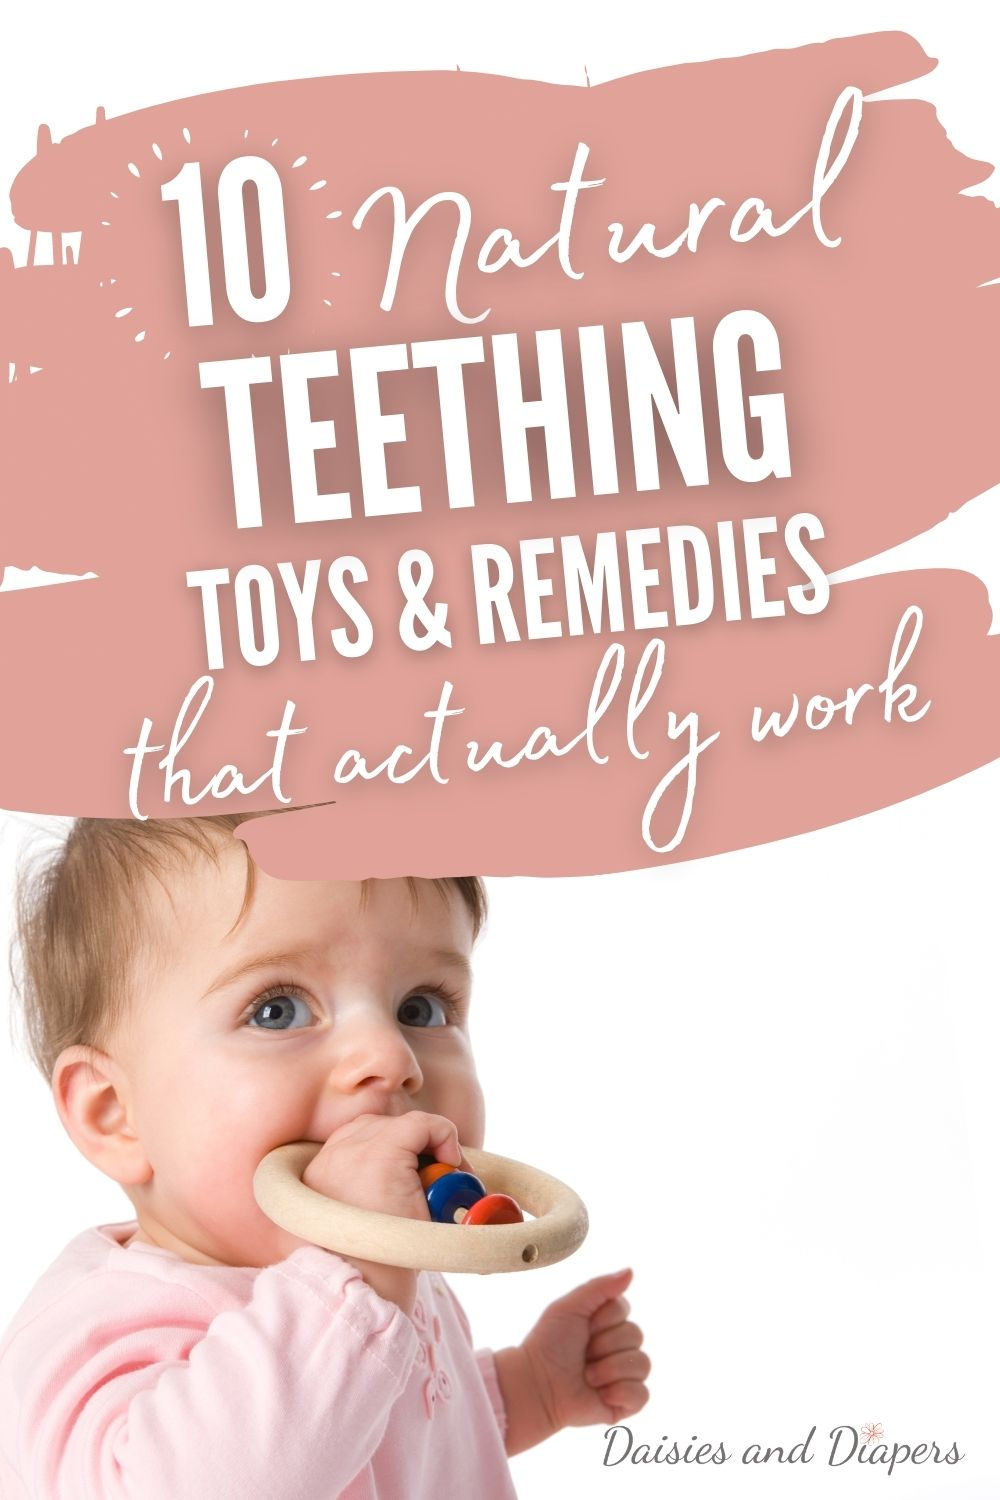 natural teething toys and remedies for babies.